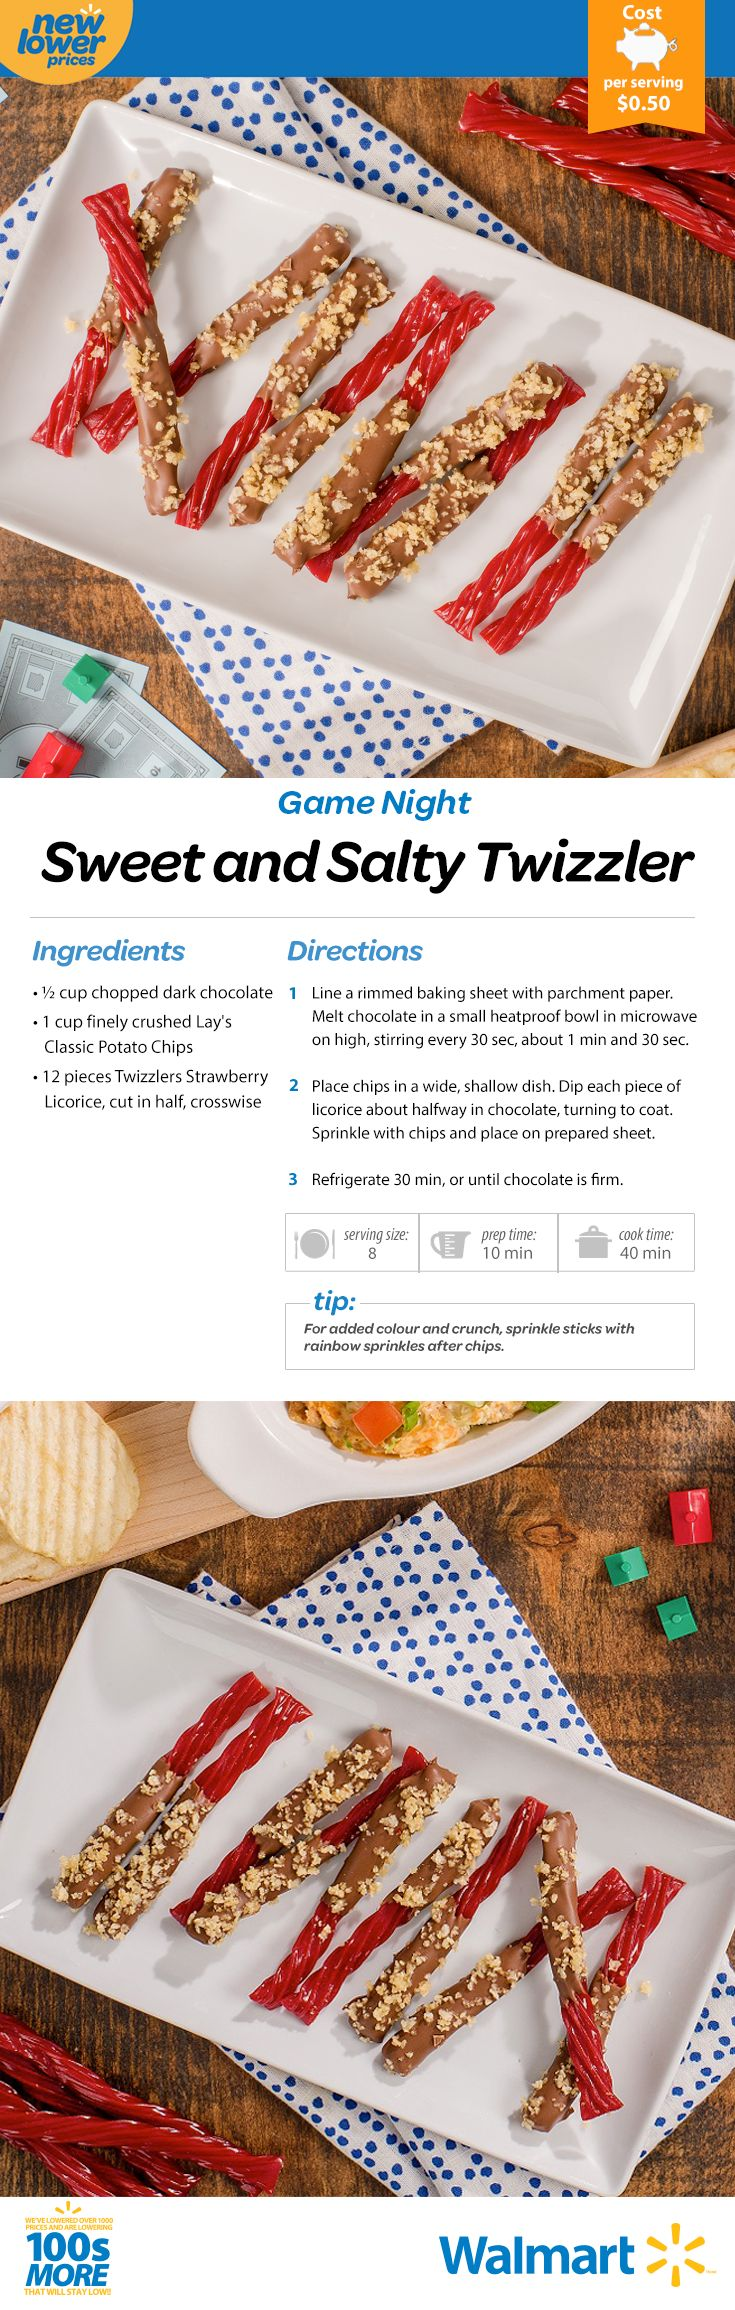 Next game night go for the gold with a sweet and salty snack built on layers of chocolate, chips … and Twizzlers!! #gamenight #games #sweetandsaltysnacks #realsolutions #savemoneyeatbetter #twizzlers